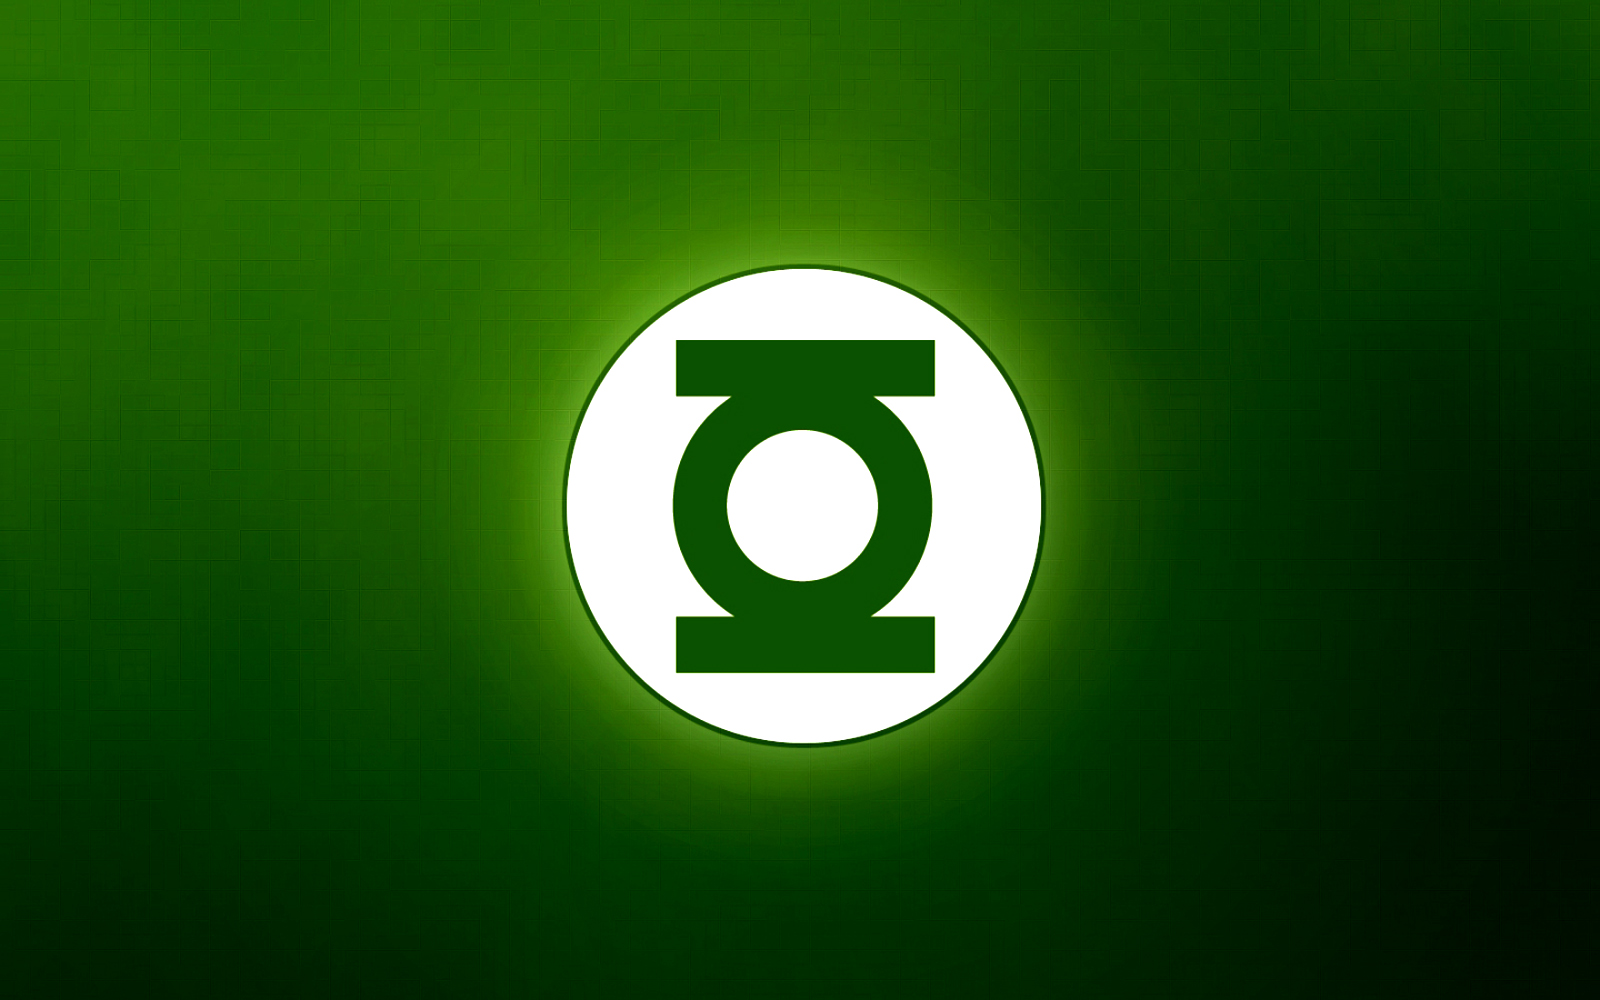 green lantern hd logo and wallpapers cartoon wallpapers